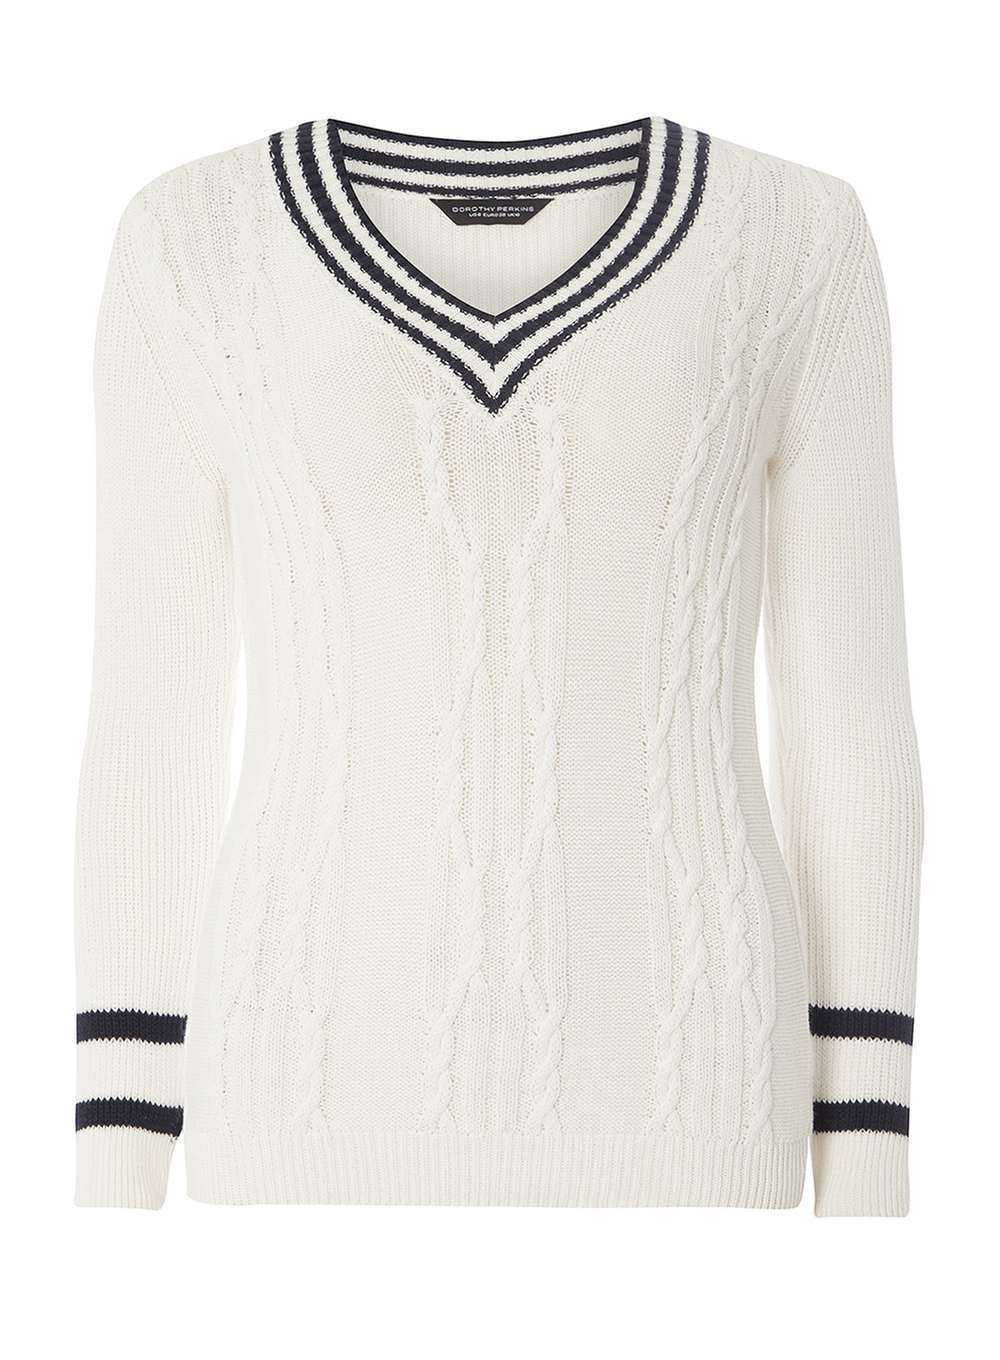 Womens Ivory Cricket Jumper White - neckline: v-neck; style: standard; pattern: cable knit; predominant colour: ivory/cream; secondary colour: black; occasions: casual, creative work; length: standard; fibres: cotton - 100%; fit: standard fit; sleeve length: long sleeve; sleeve style: standard; texture group: knits/crochet; pattern type: knitted - fine stitch; pattern size: standard; season: a/w 2016; wardrobe: highlight